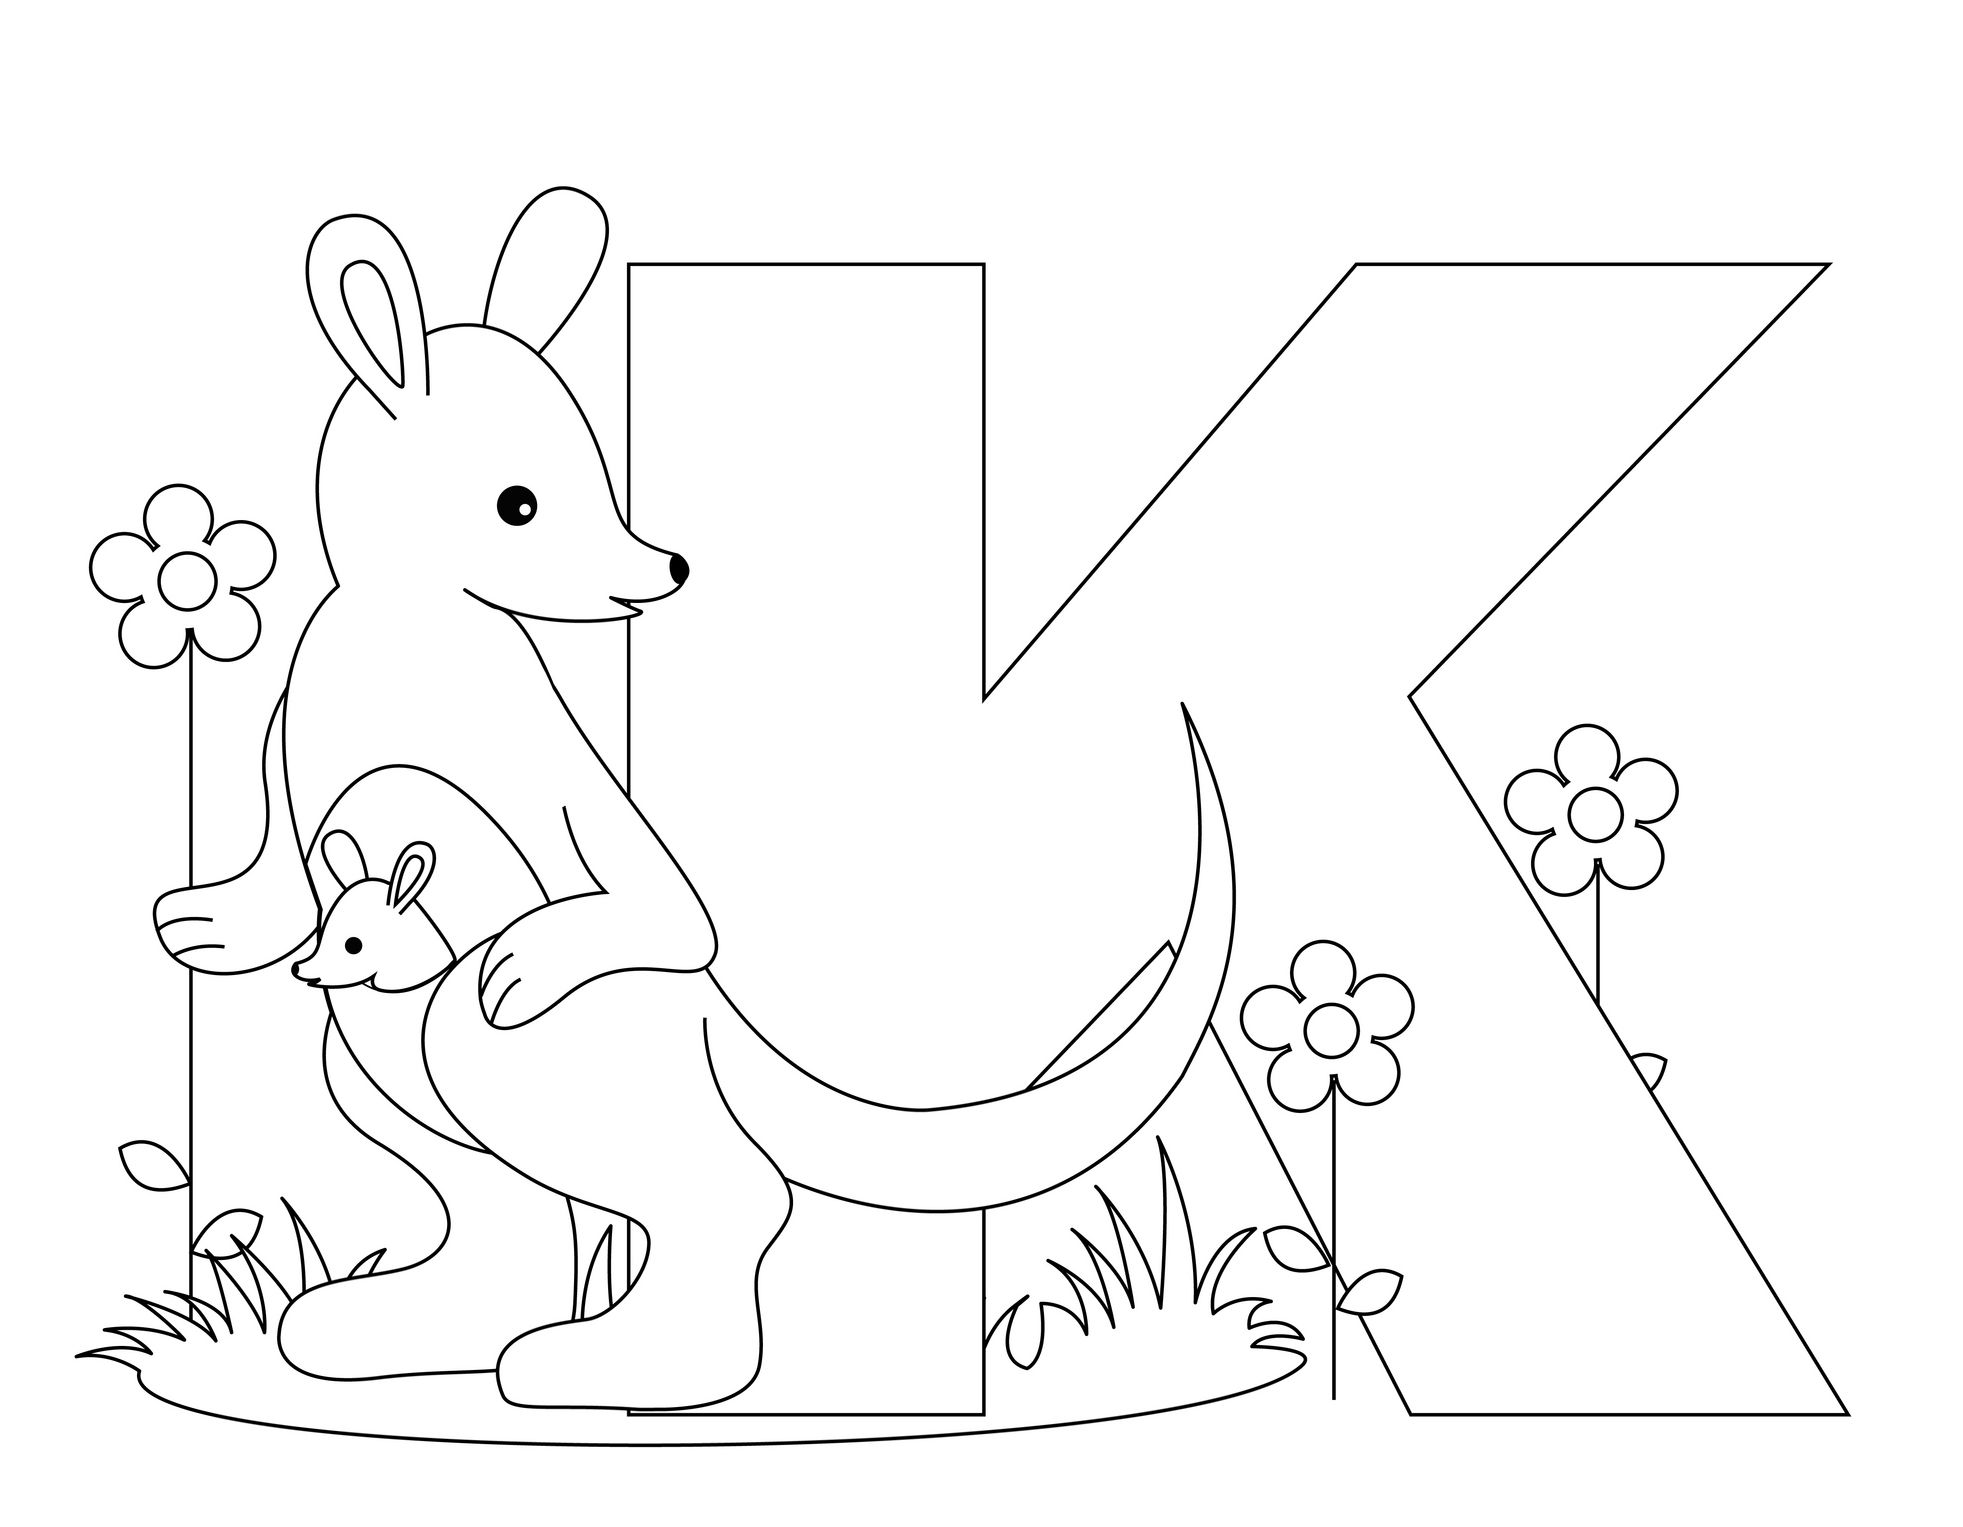 Animal Alphabet Letter K For Kangaroo Kindergarten Coloring Pages Abc Coloring Pages Letter A Coloring Pages